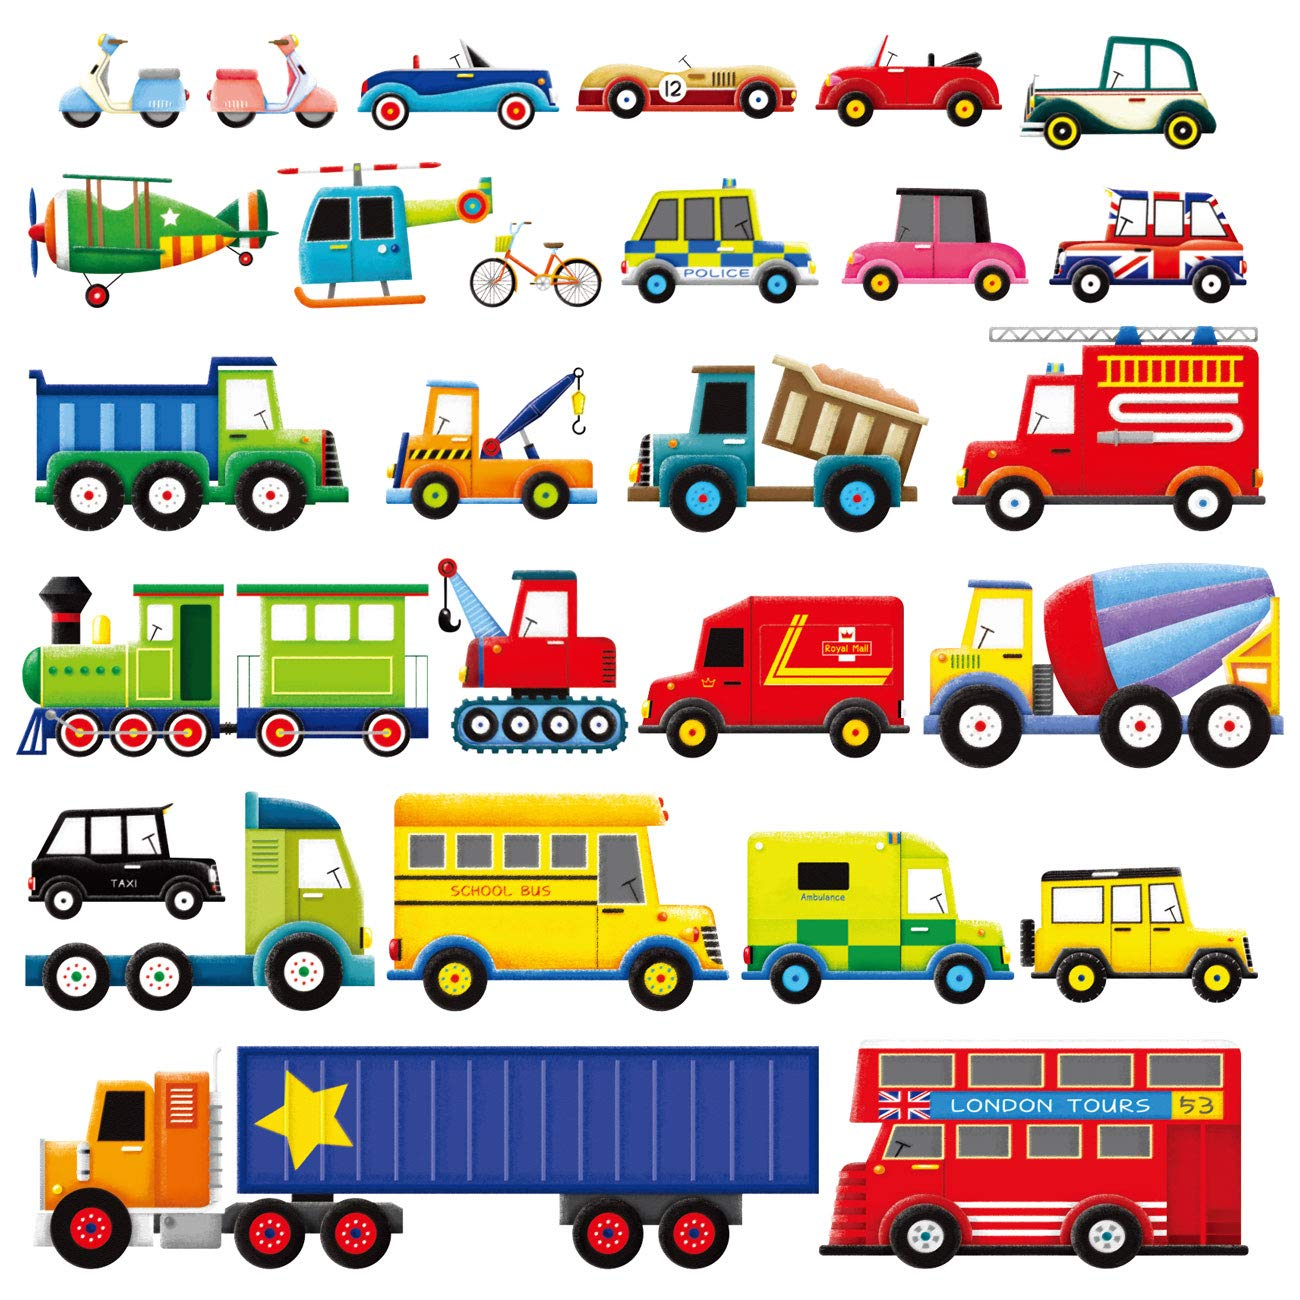 Decowall DW-1205 27 Transports Kids Wall Stickers Wall Decals Peel and Stick Removable Wall Stickers for Kids Nursery Bedroom Living Room